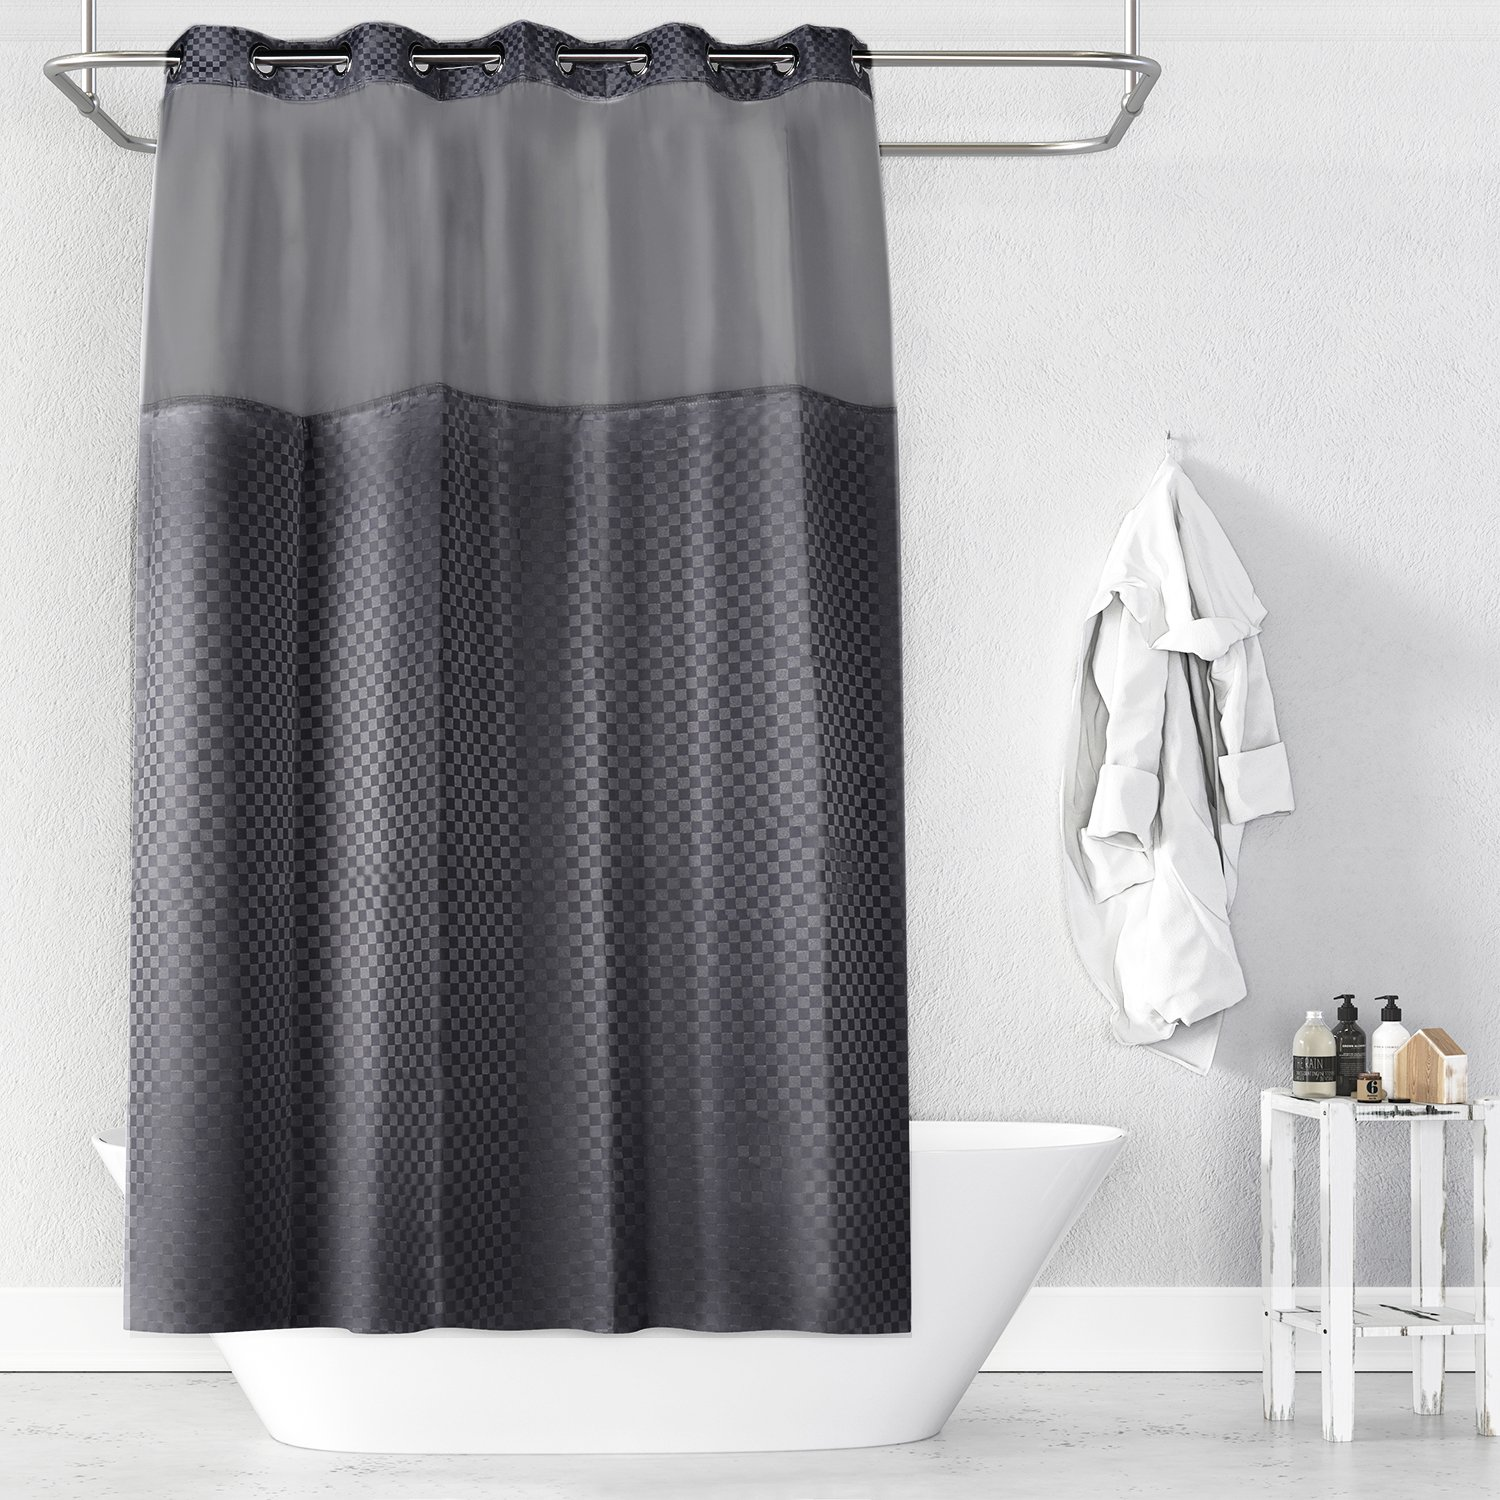 Details About Lagute SnapHook Hookless Shower Curtain W Snap In Liner